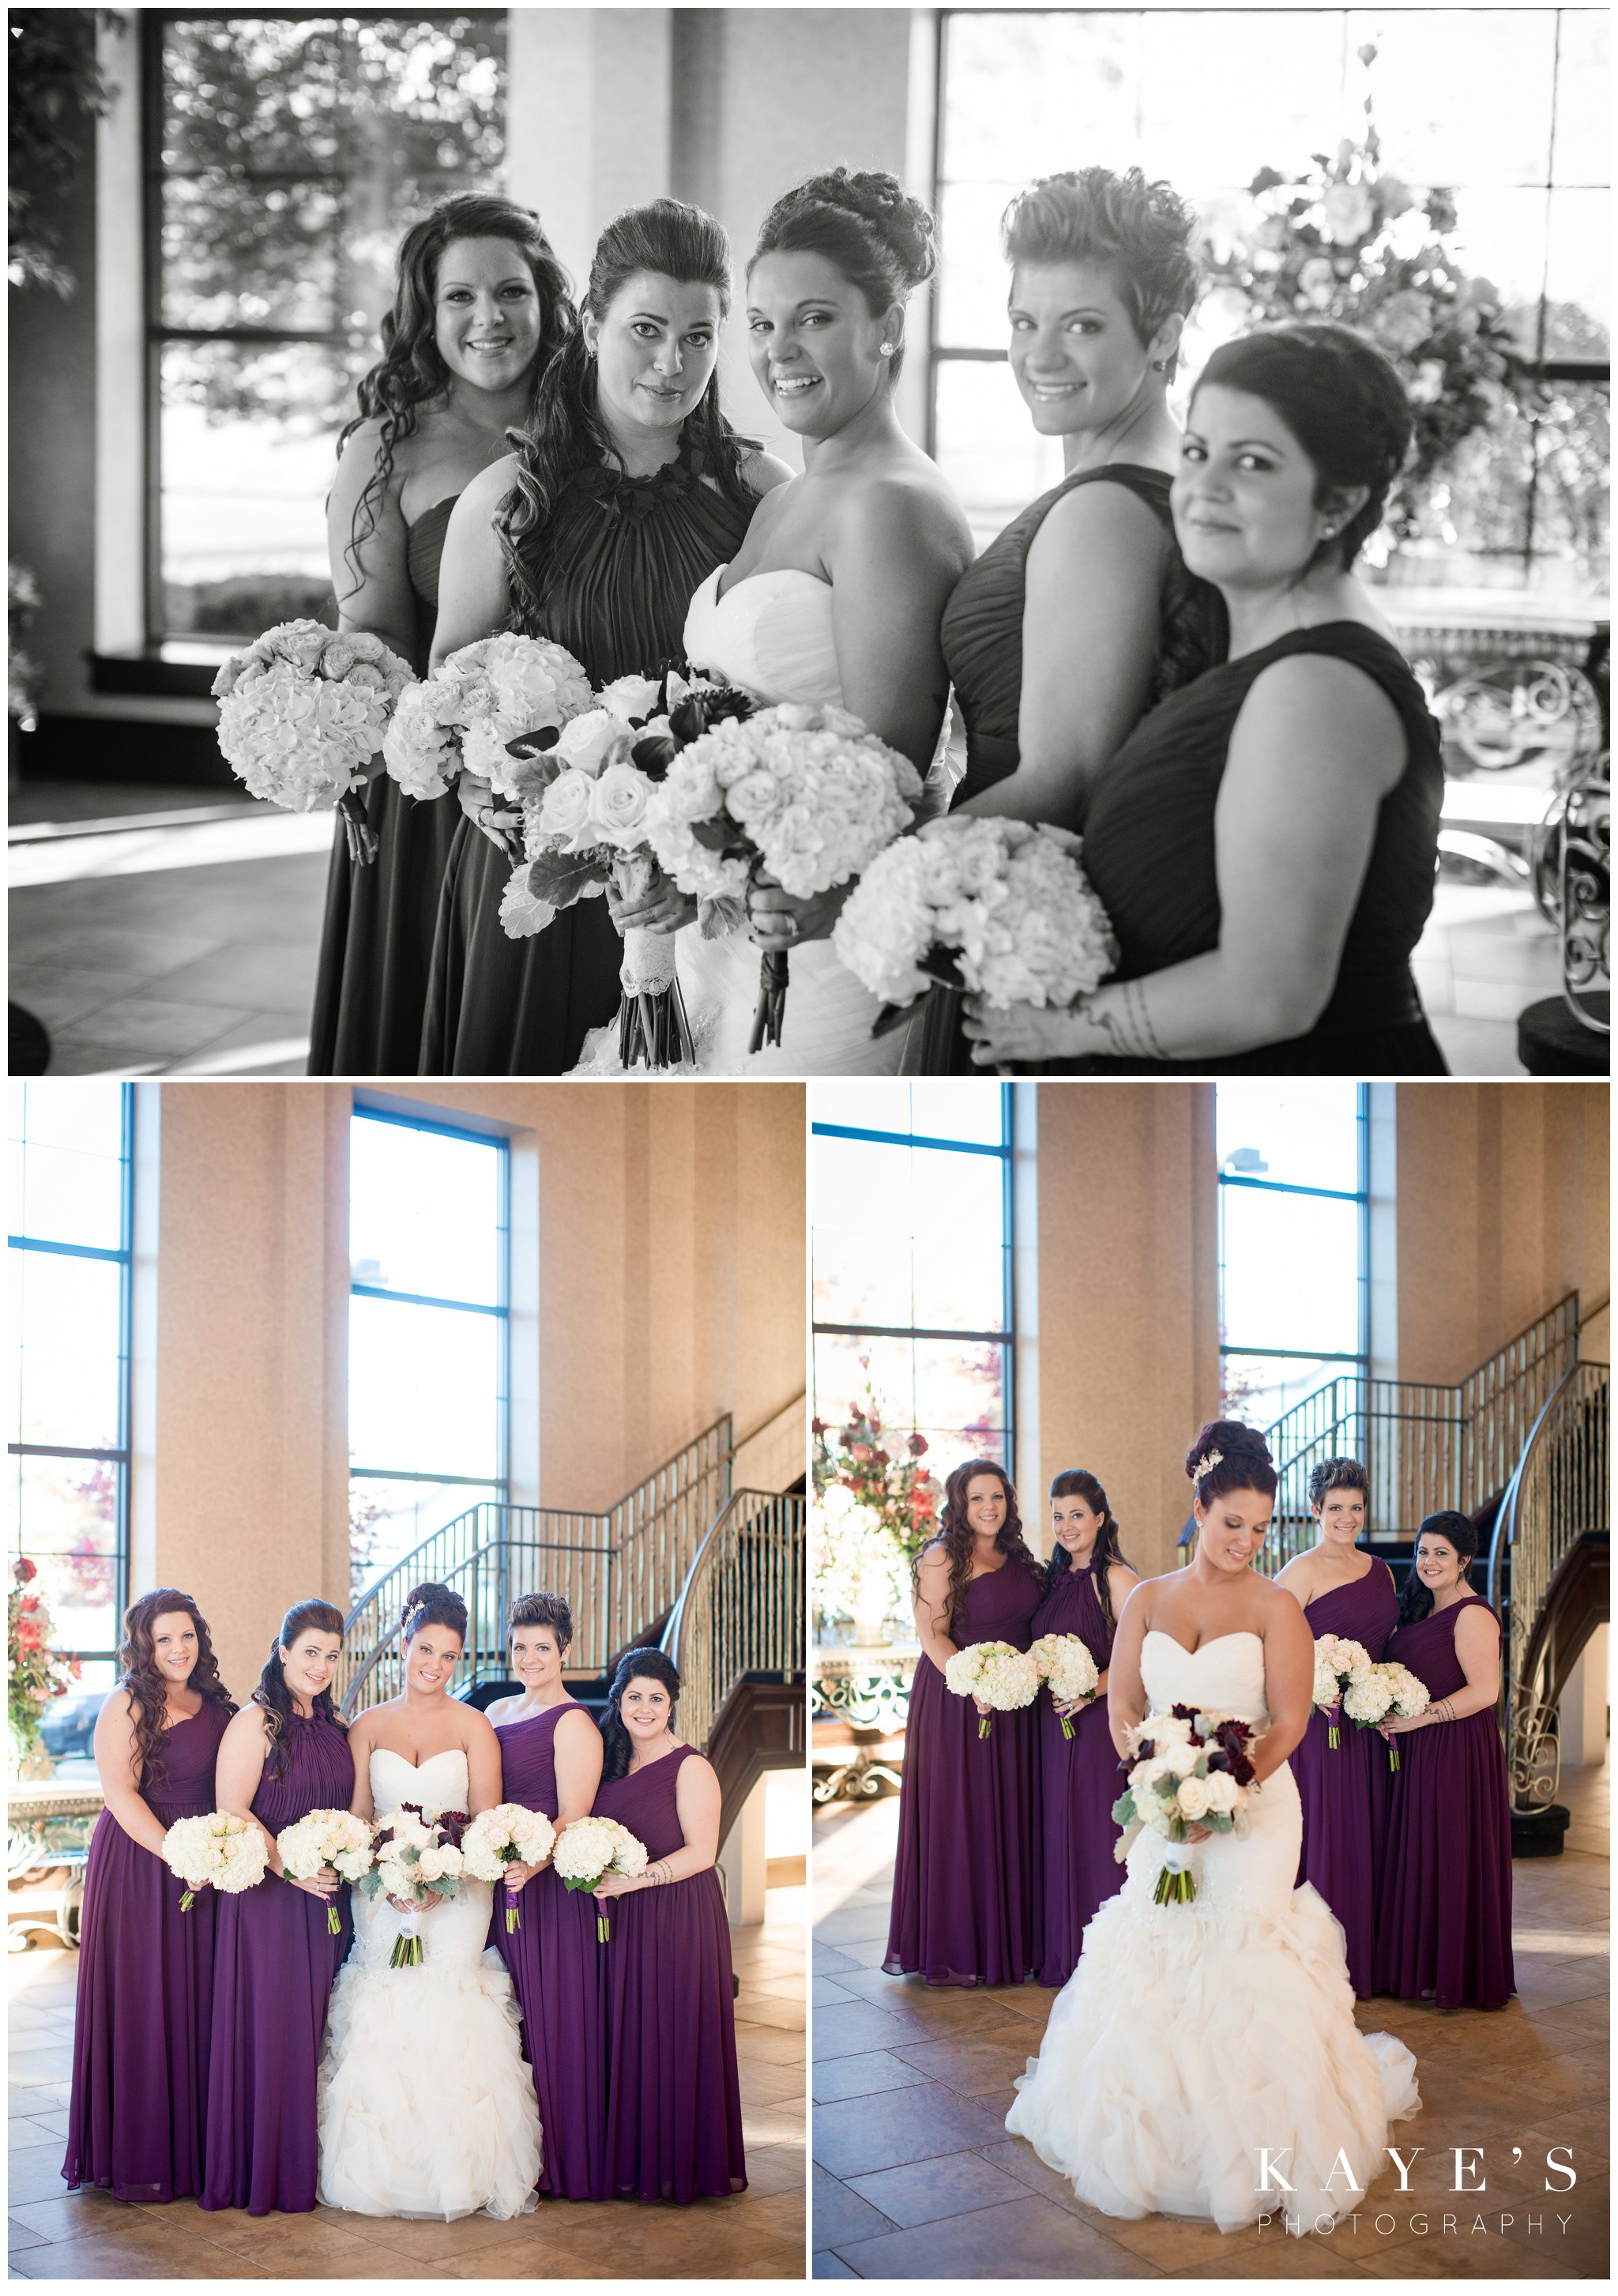 Howell Michigan wedding photography, marriage photos, best wedding photos, wedding portraits